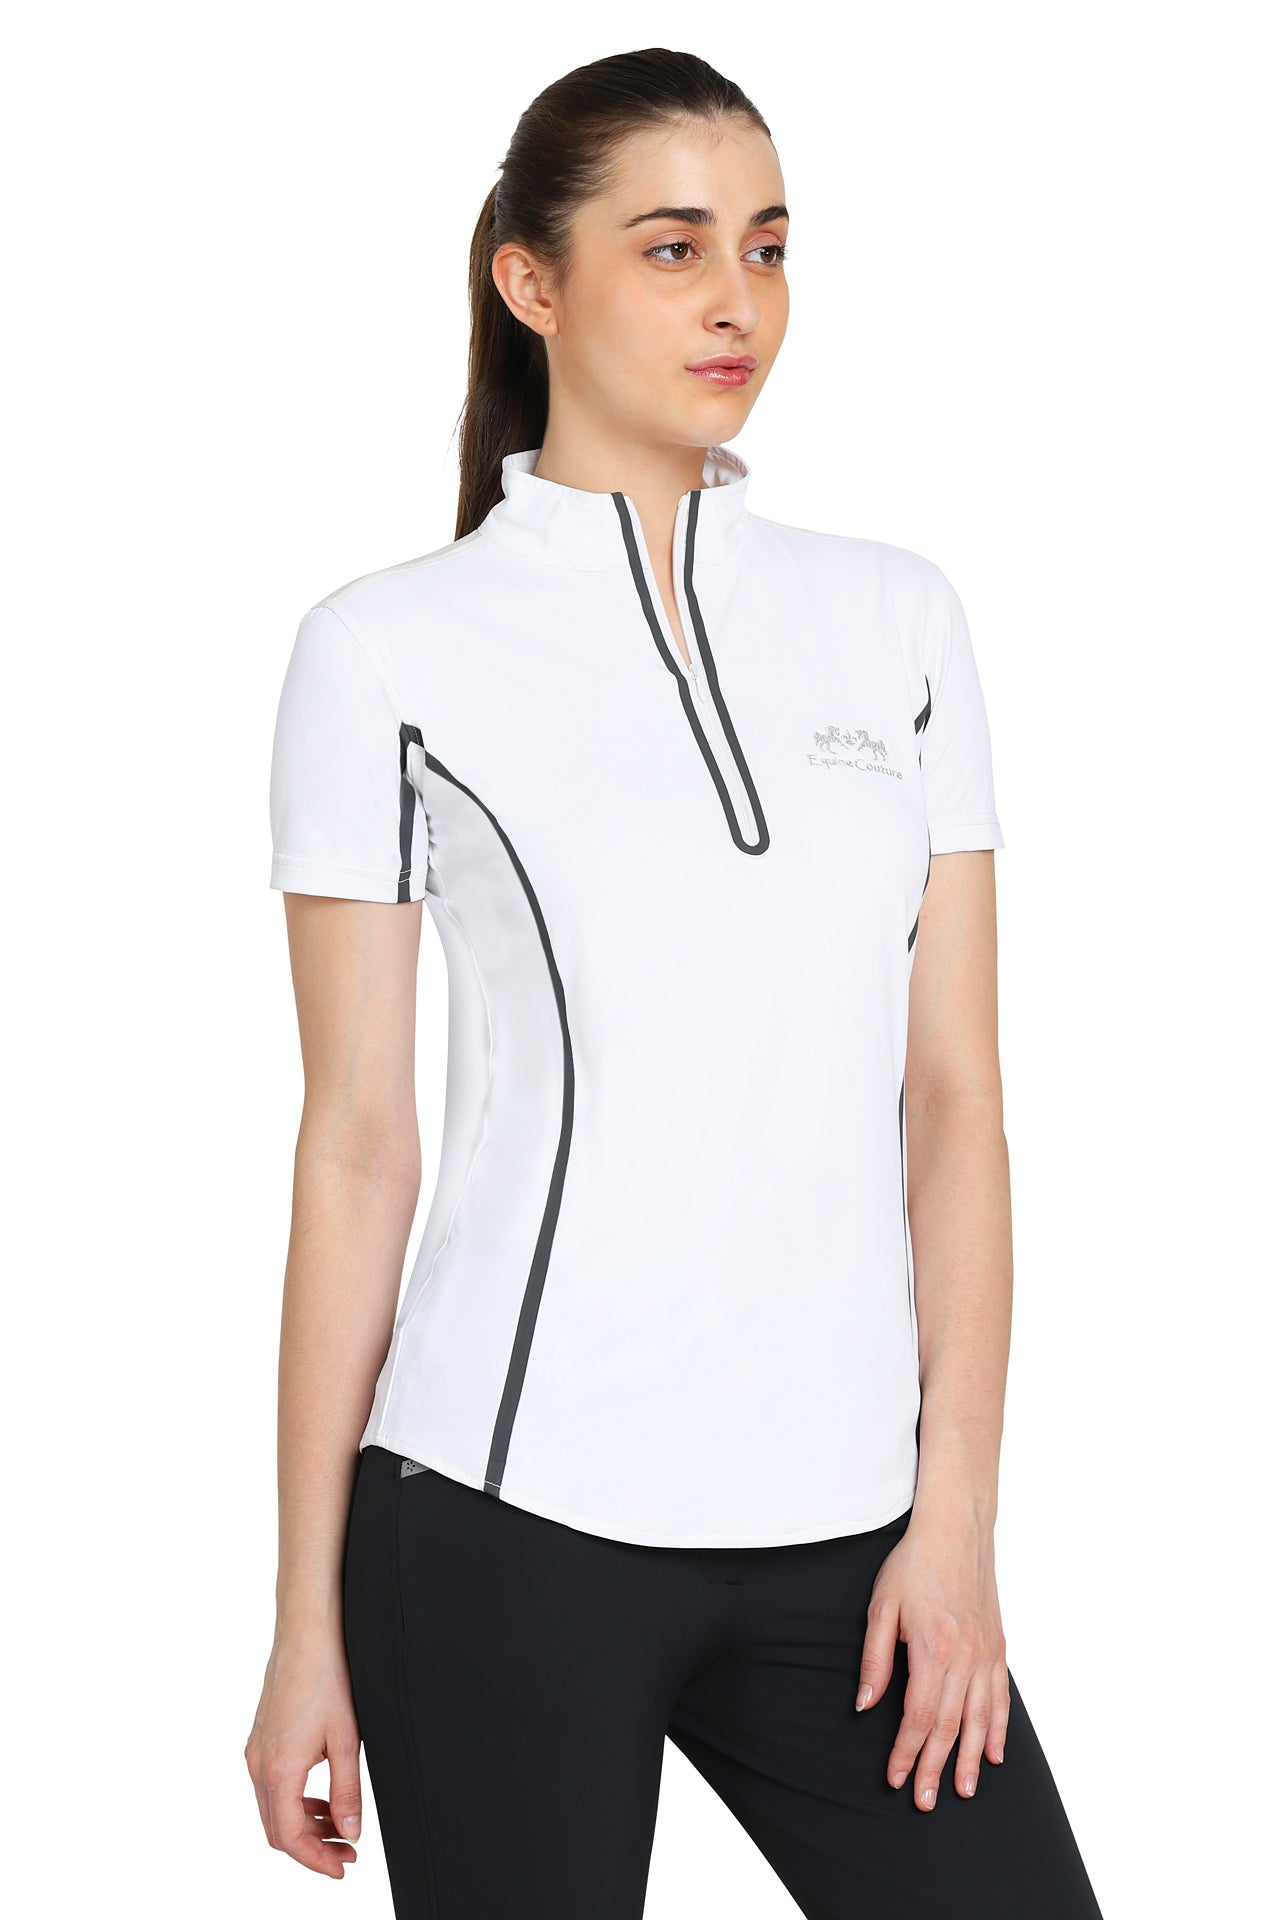 EQUINE COUTURE LADIES IBIZA SPORT SHIRT - Equine Couture - Breeches.com